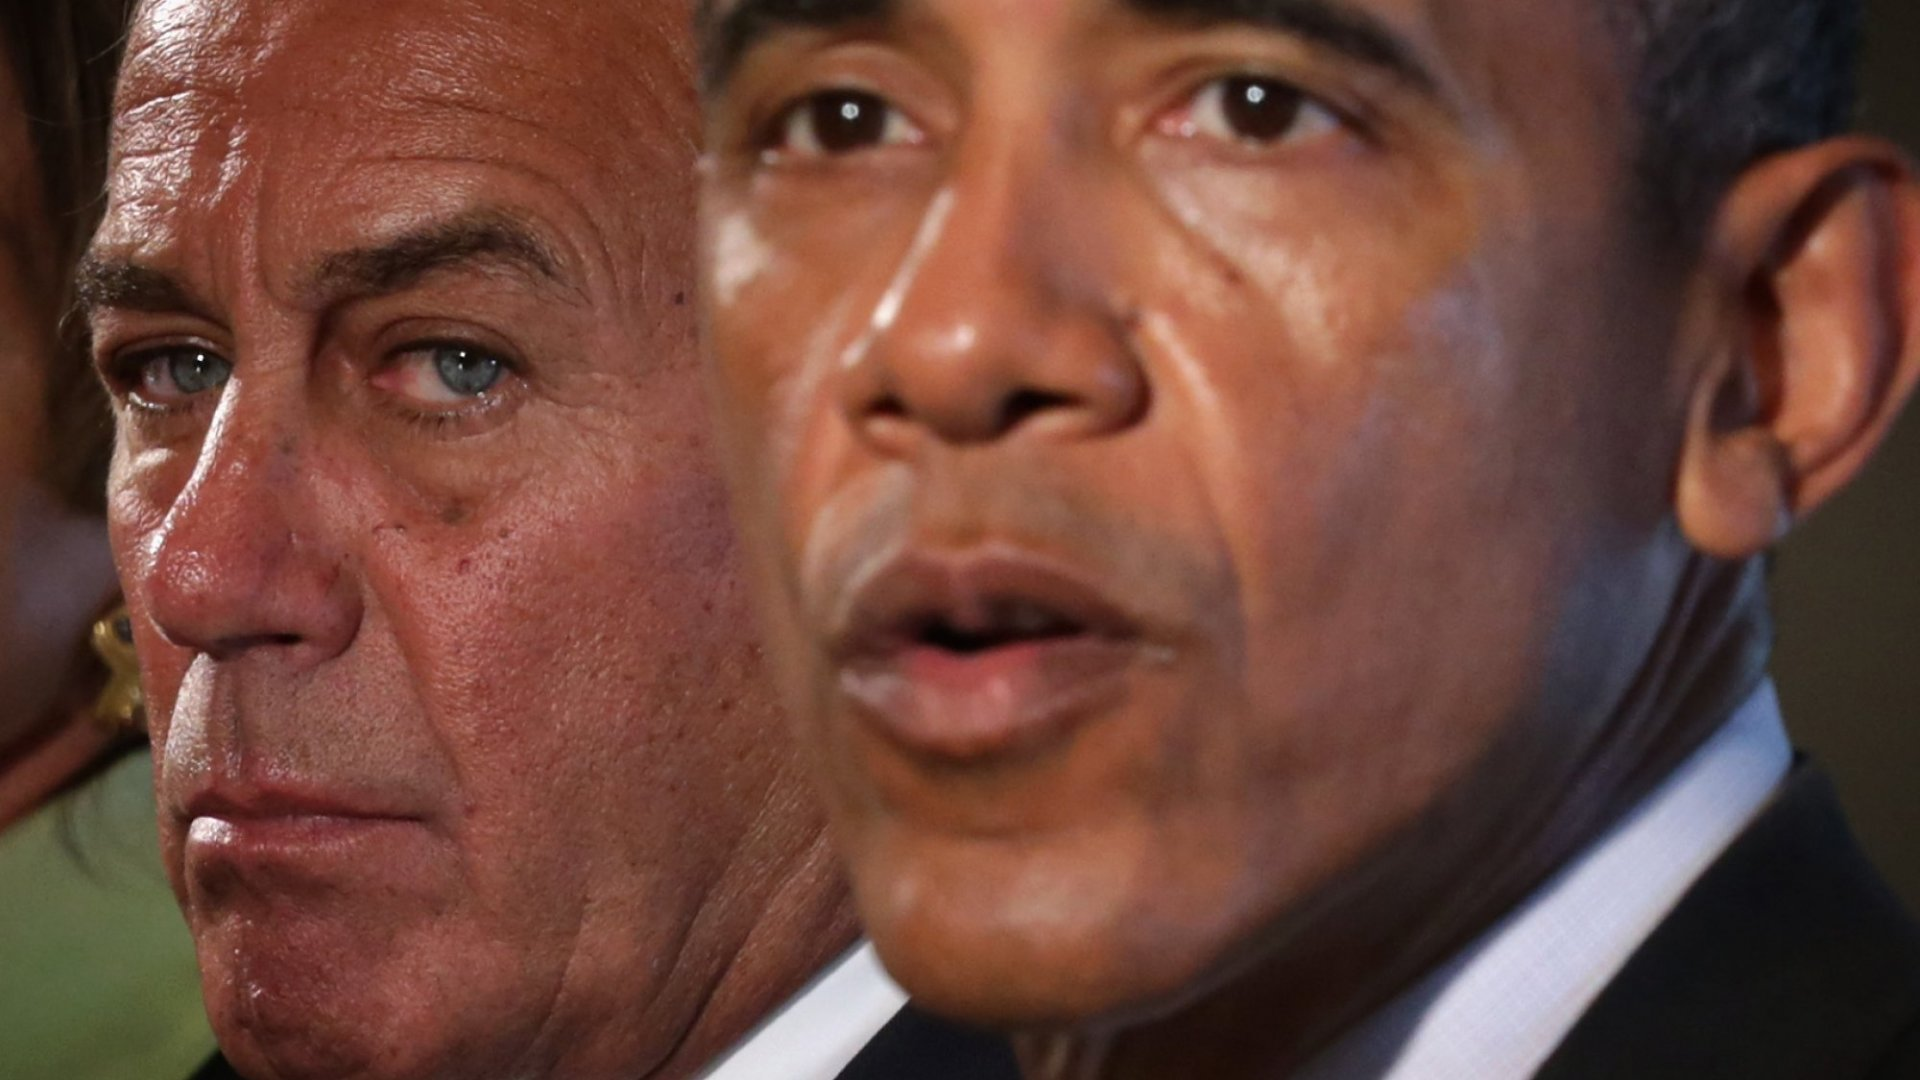 Speaker of the House Rep. John Boehner and President Barack Obama